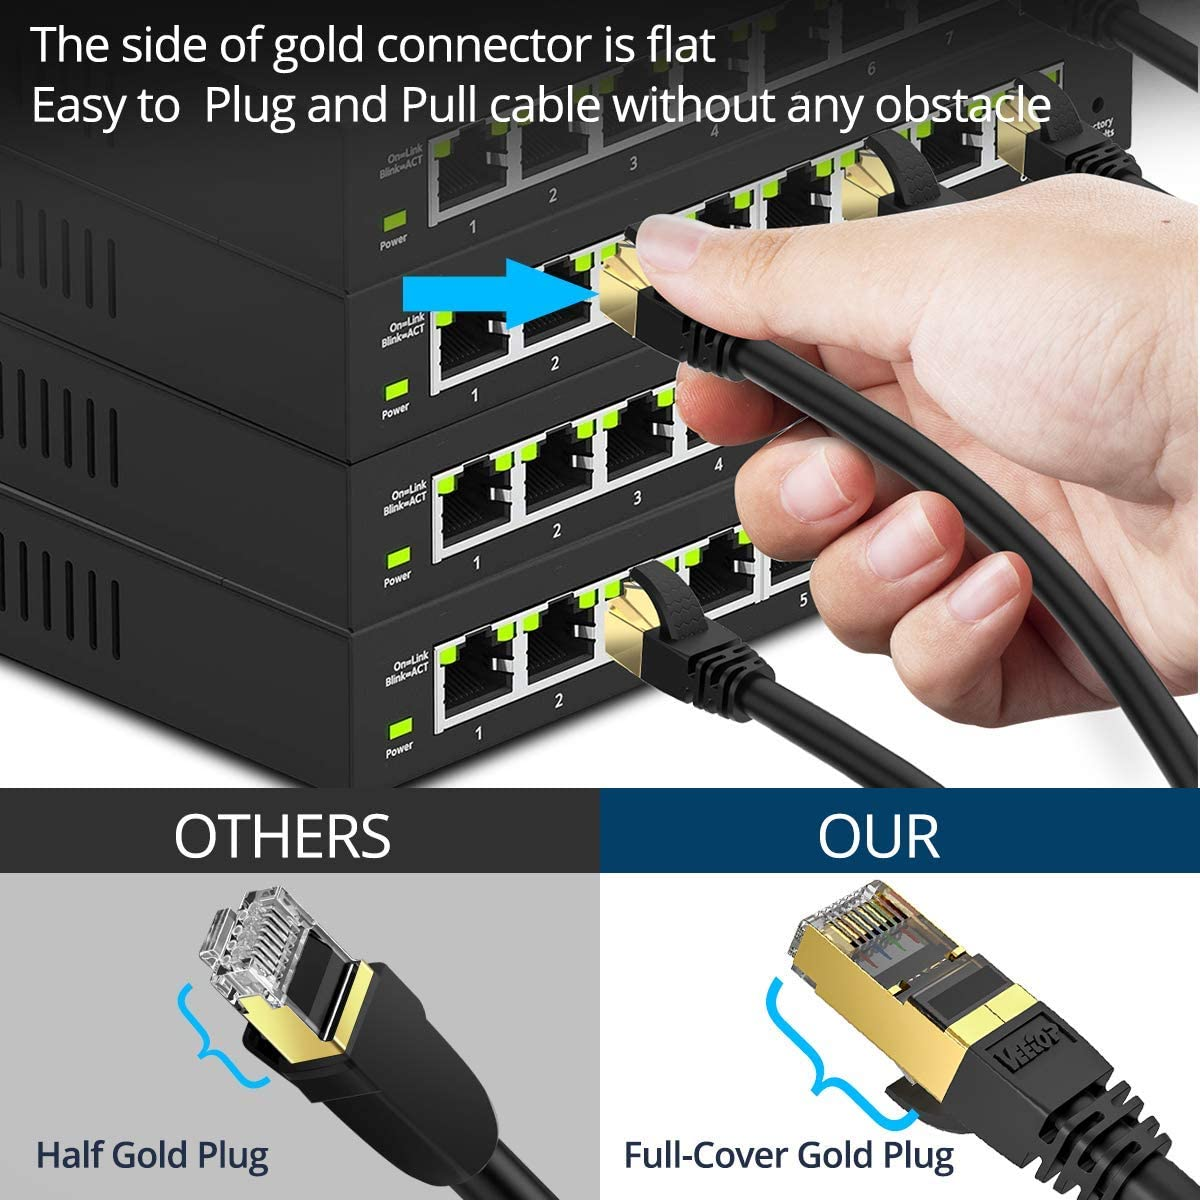 17.5m//57ft CAT8 Ethernet Cable Veetop 40Gbps 2000Mhz High Speed Gigabit SSTP LAN Network Internet Cables with RJ45 Gold Plated Connector for Use of Smart Office Smart Home System iOT Gaming 1 Pack